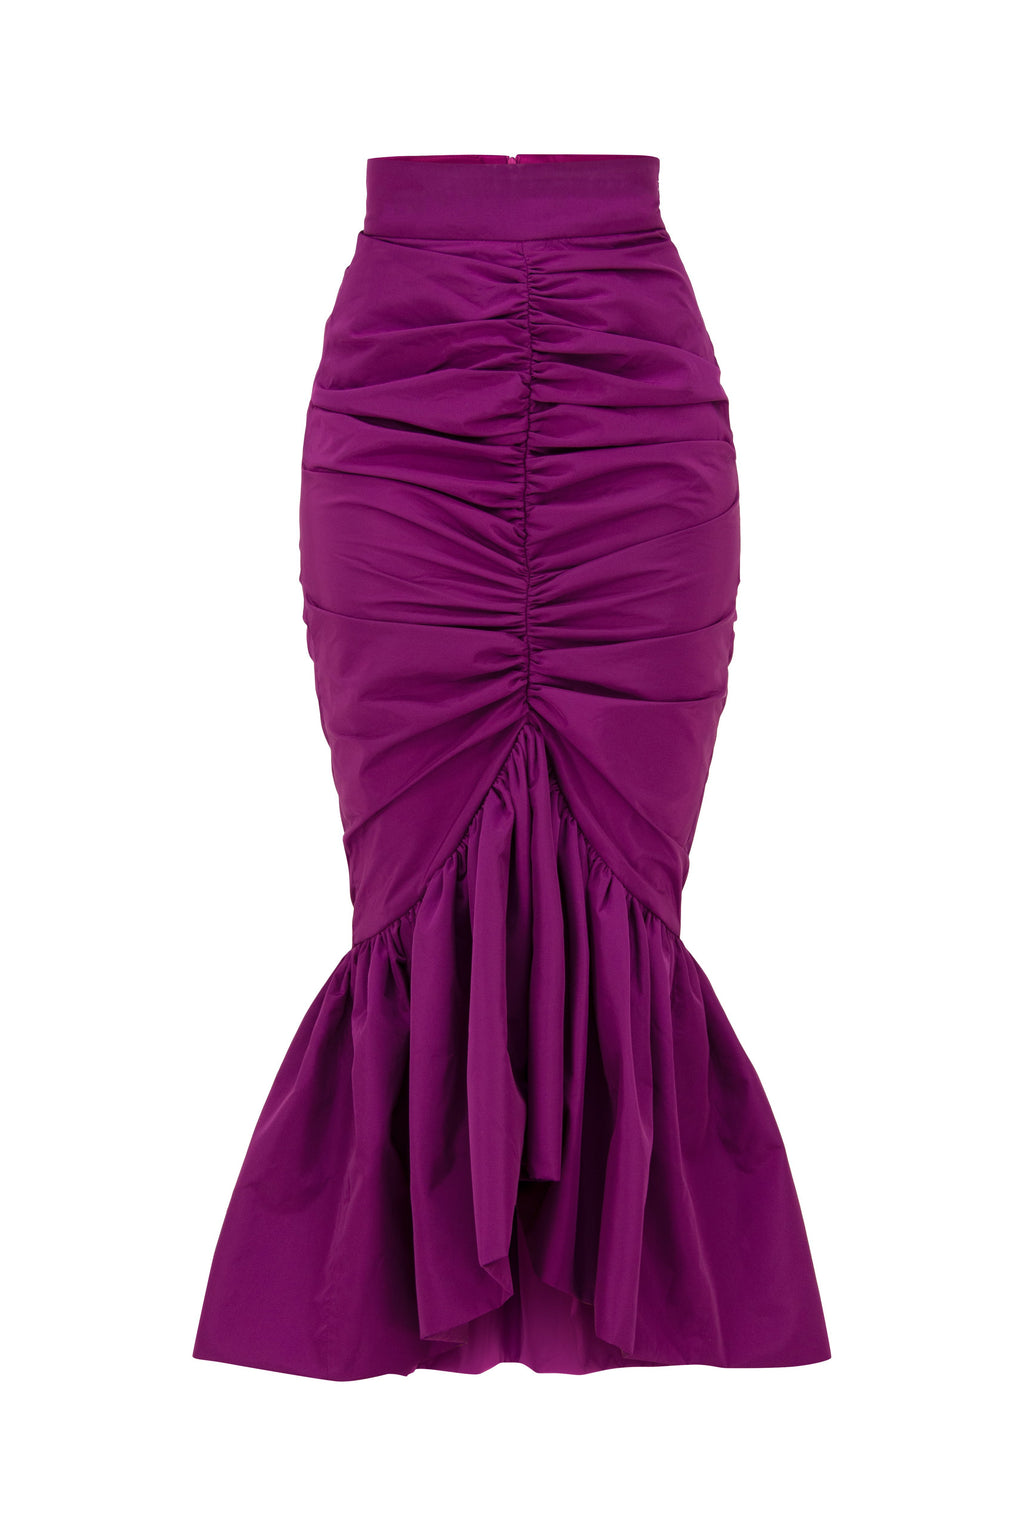 Purple Rain Ruffle Hem Ruched Bodycon Midi Skirt - Tia Dorraine London